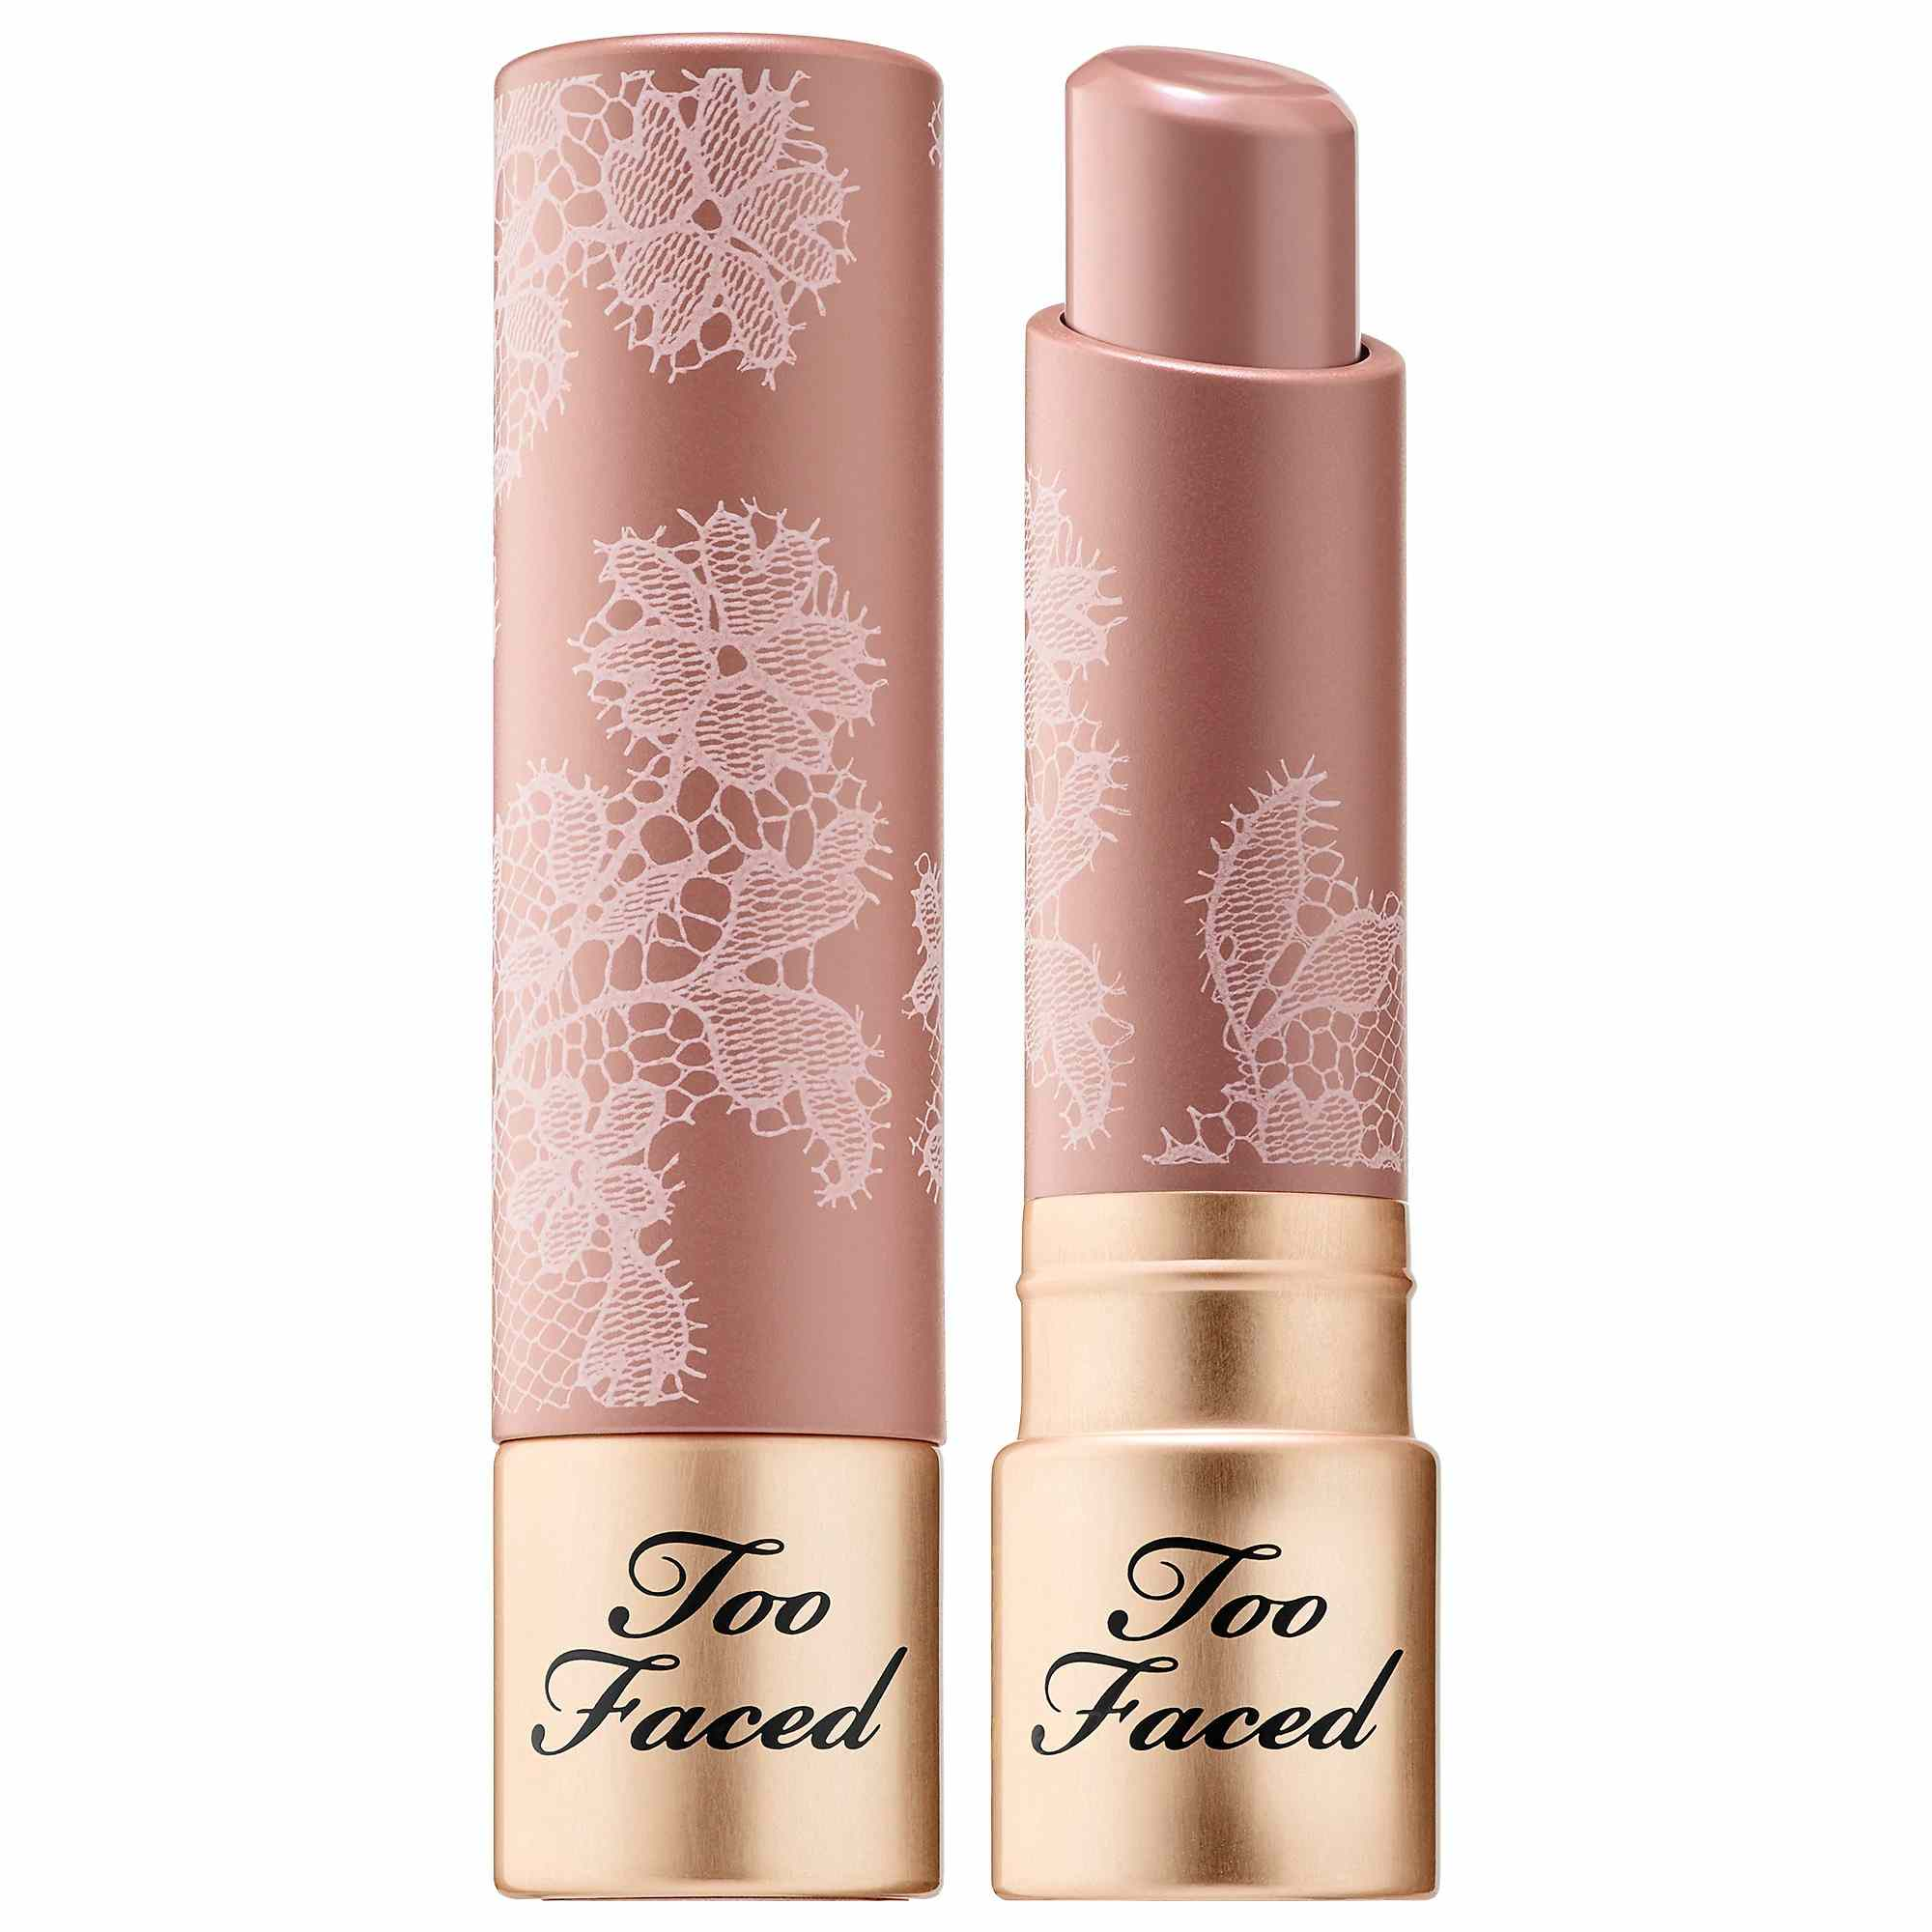 Too Faced Natural Nudes Lipstick in Skinny Dippin'